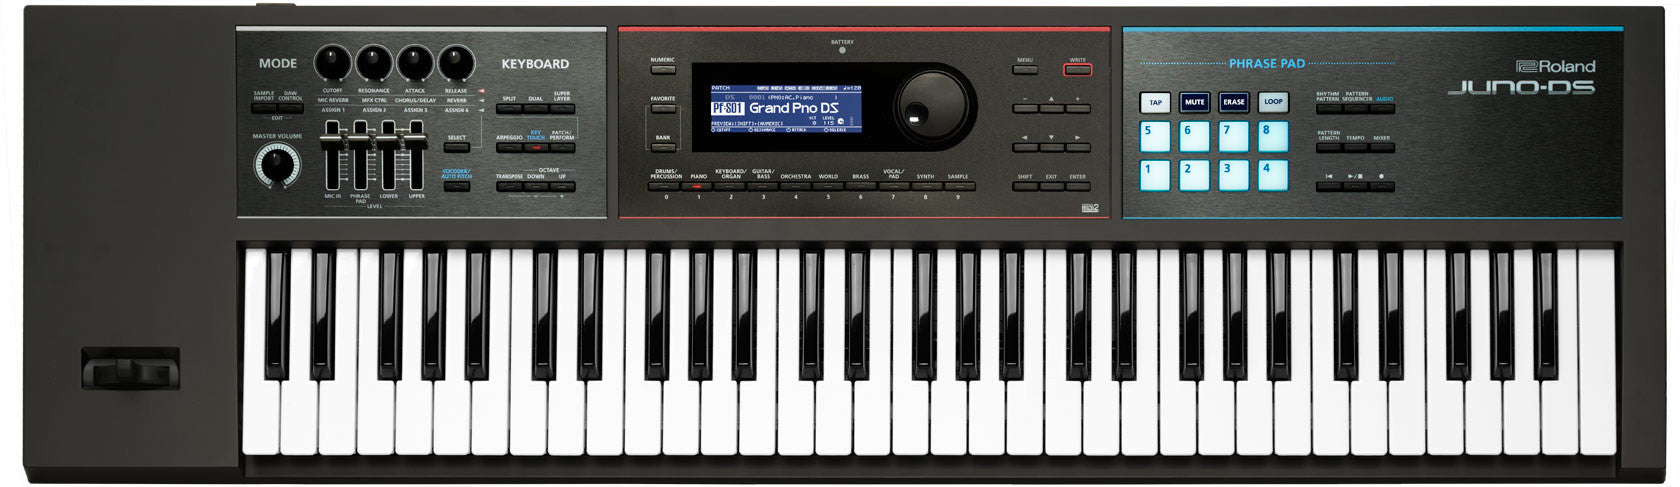 Roland JUNO-DS61 61-key Synthesizer | L A  Music - Canada's